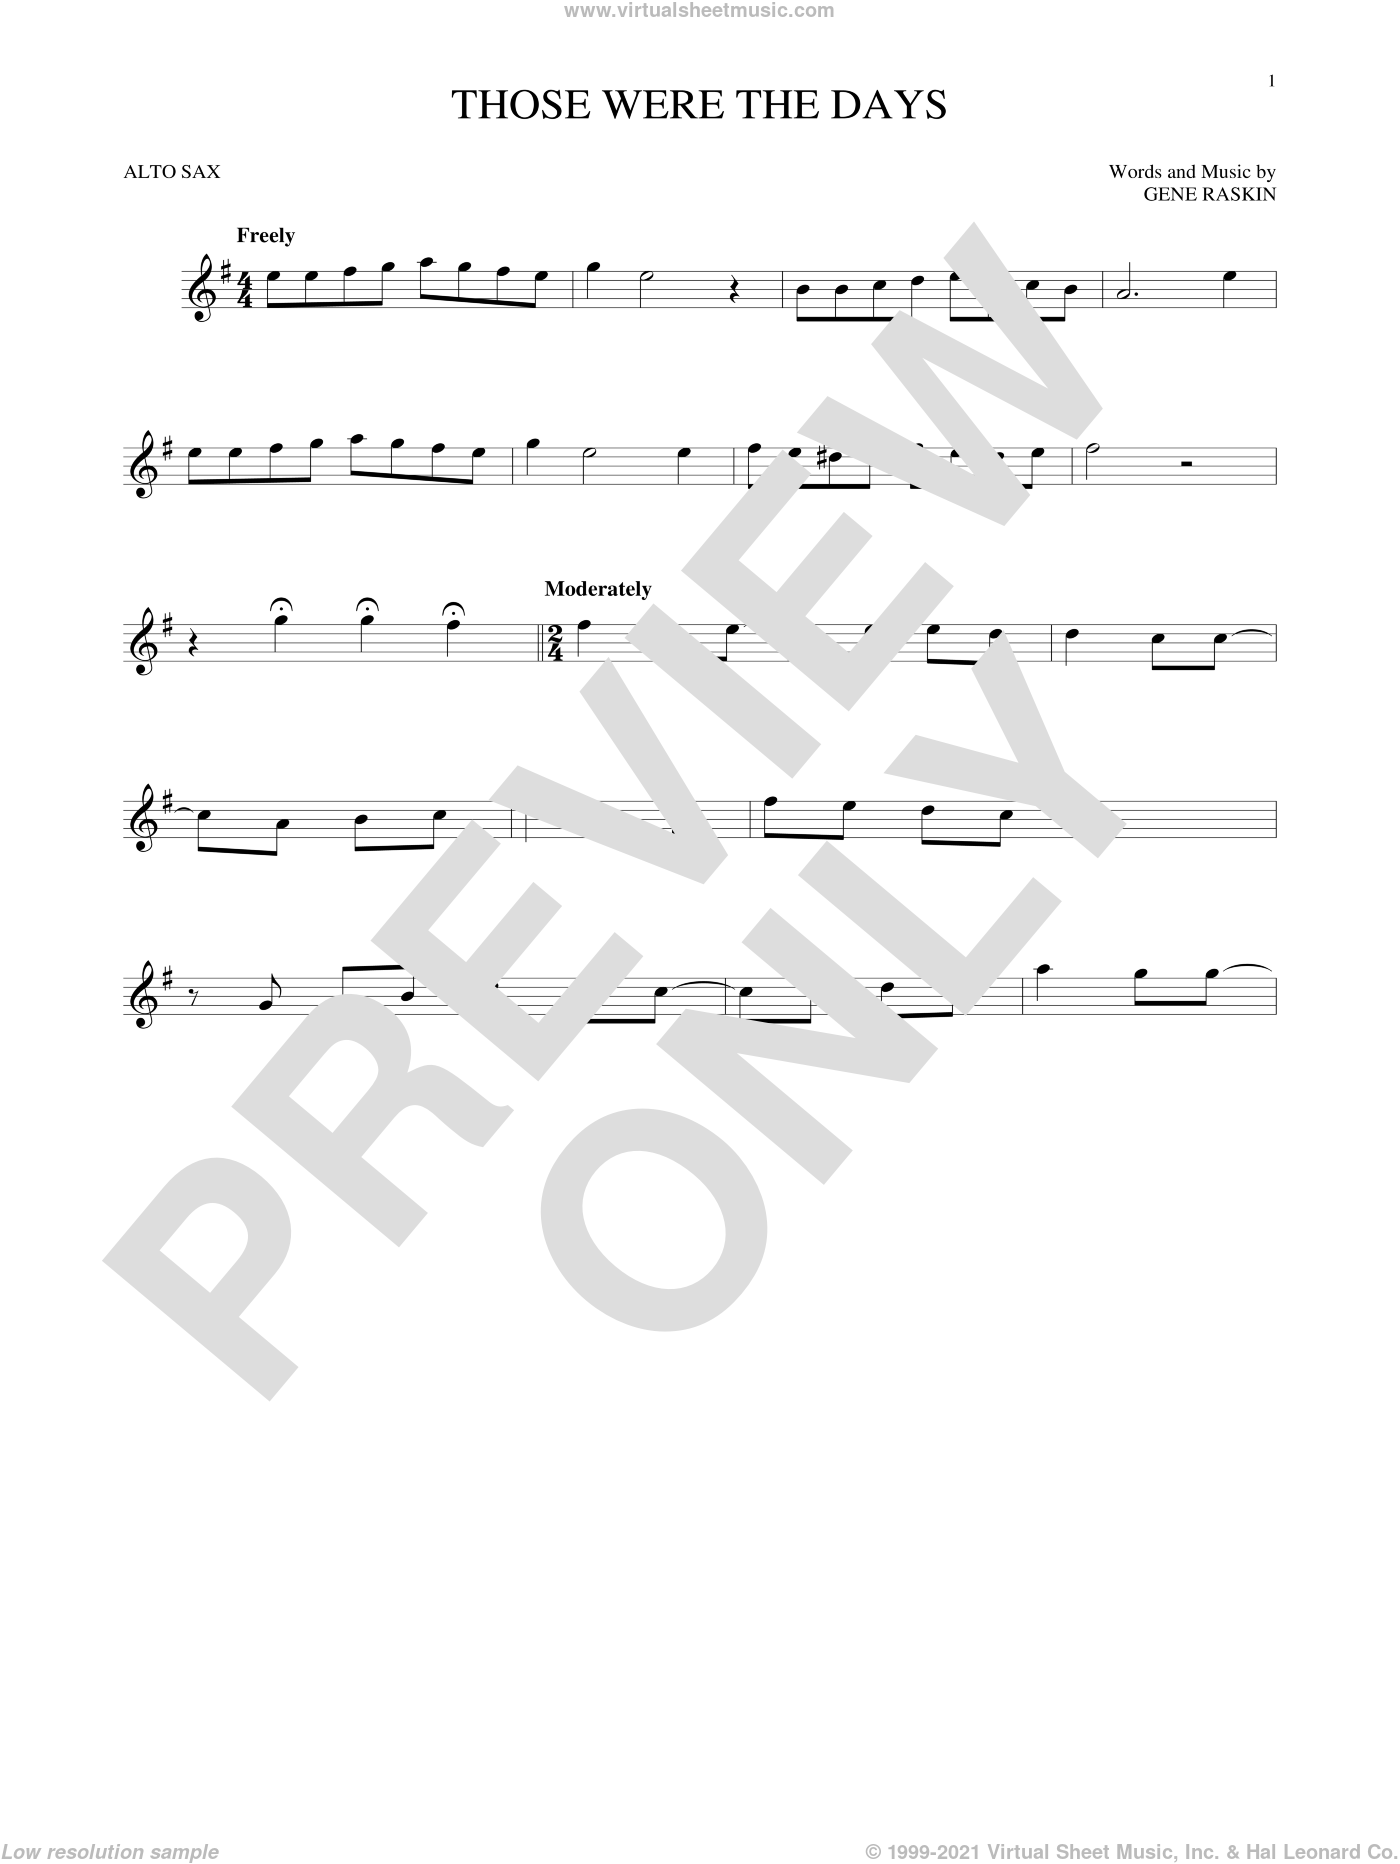 Those Were The Days sheet music for alto saxophone solo by Mary Hopkins and Gene Raskin, intermediate skill level